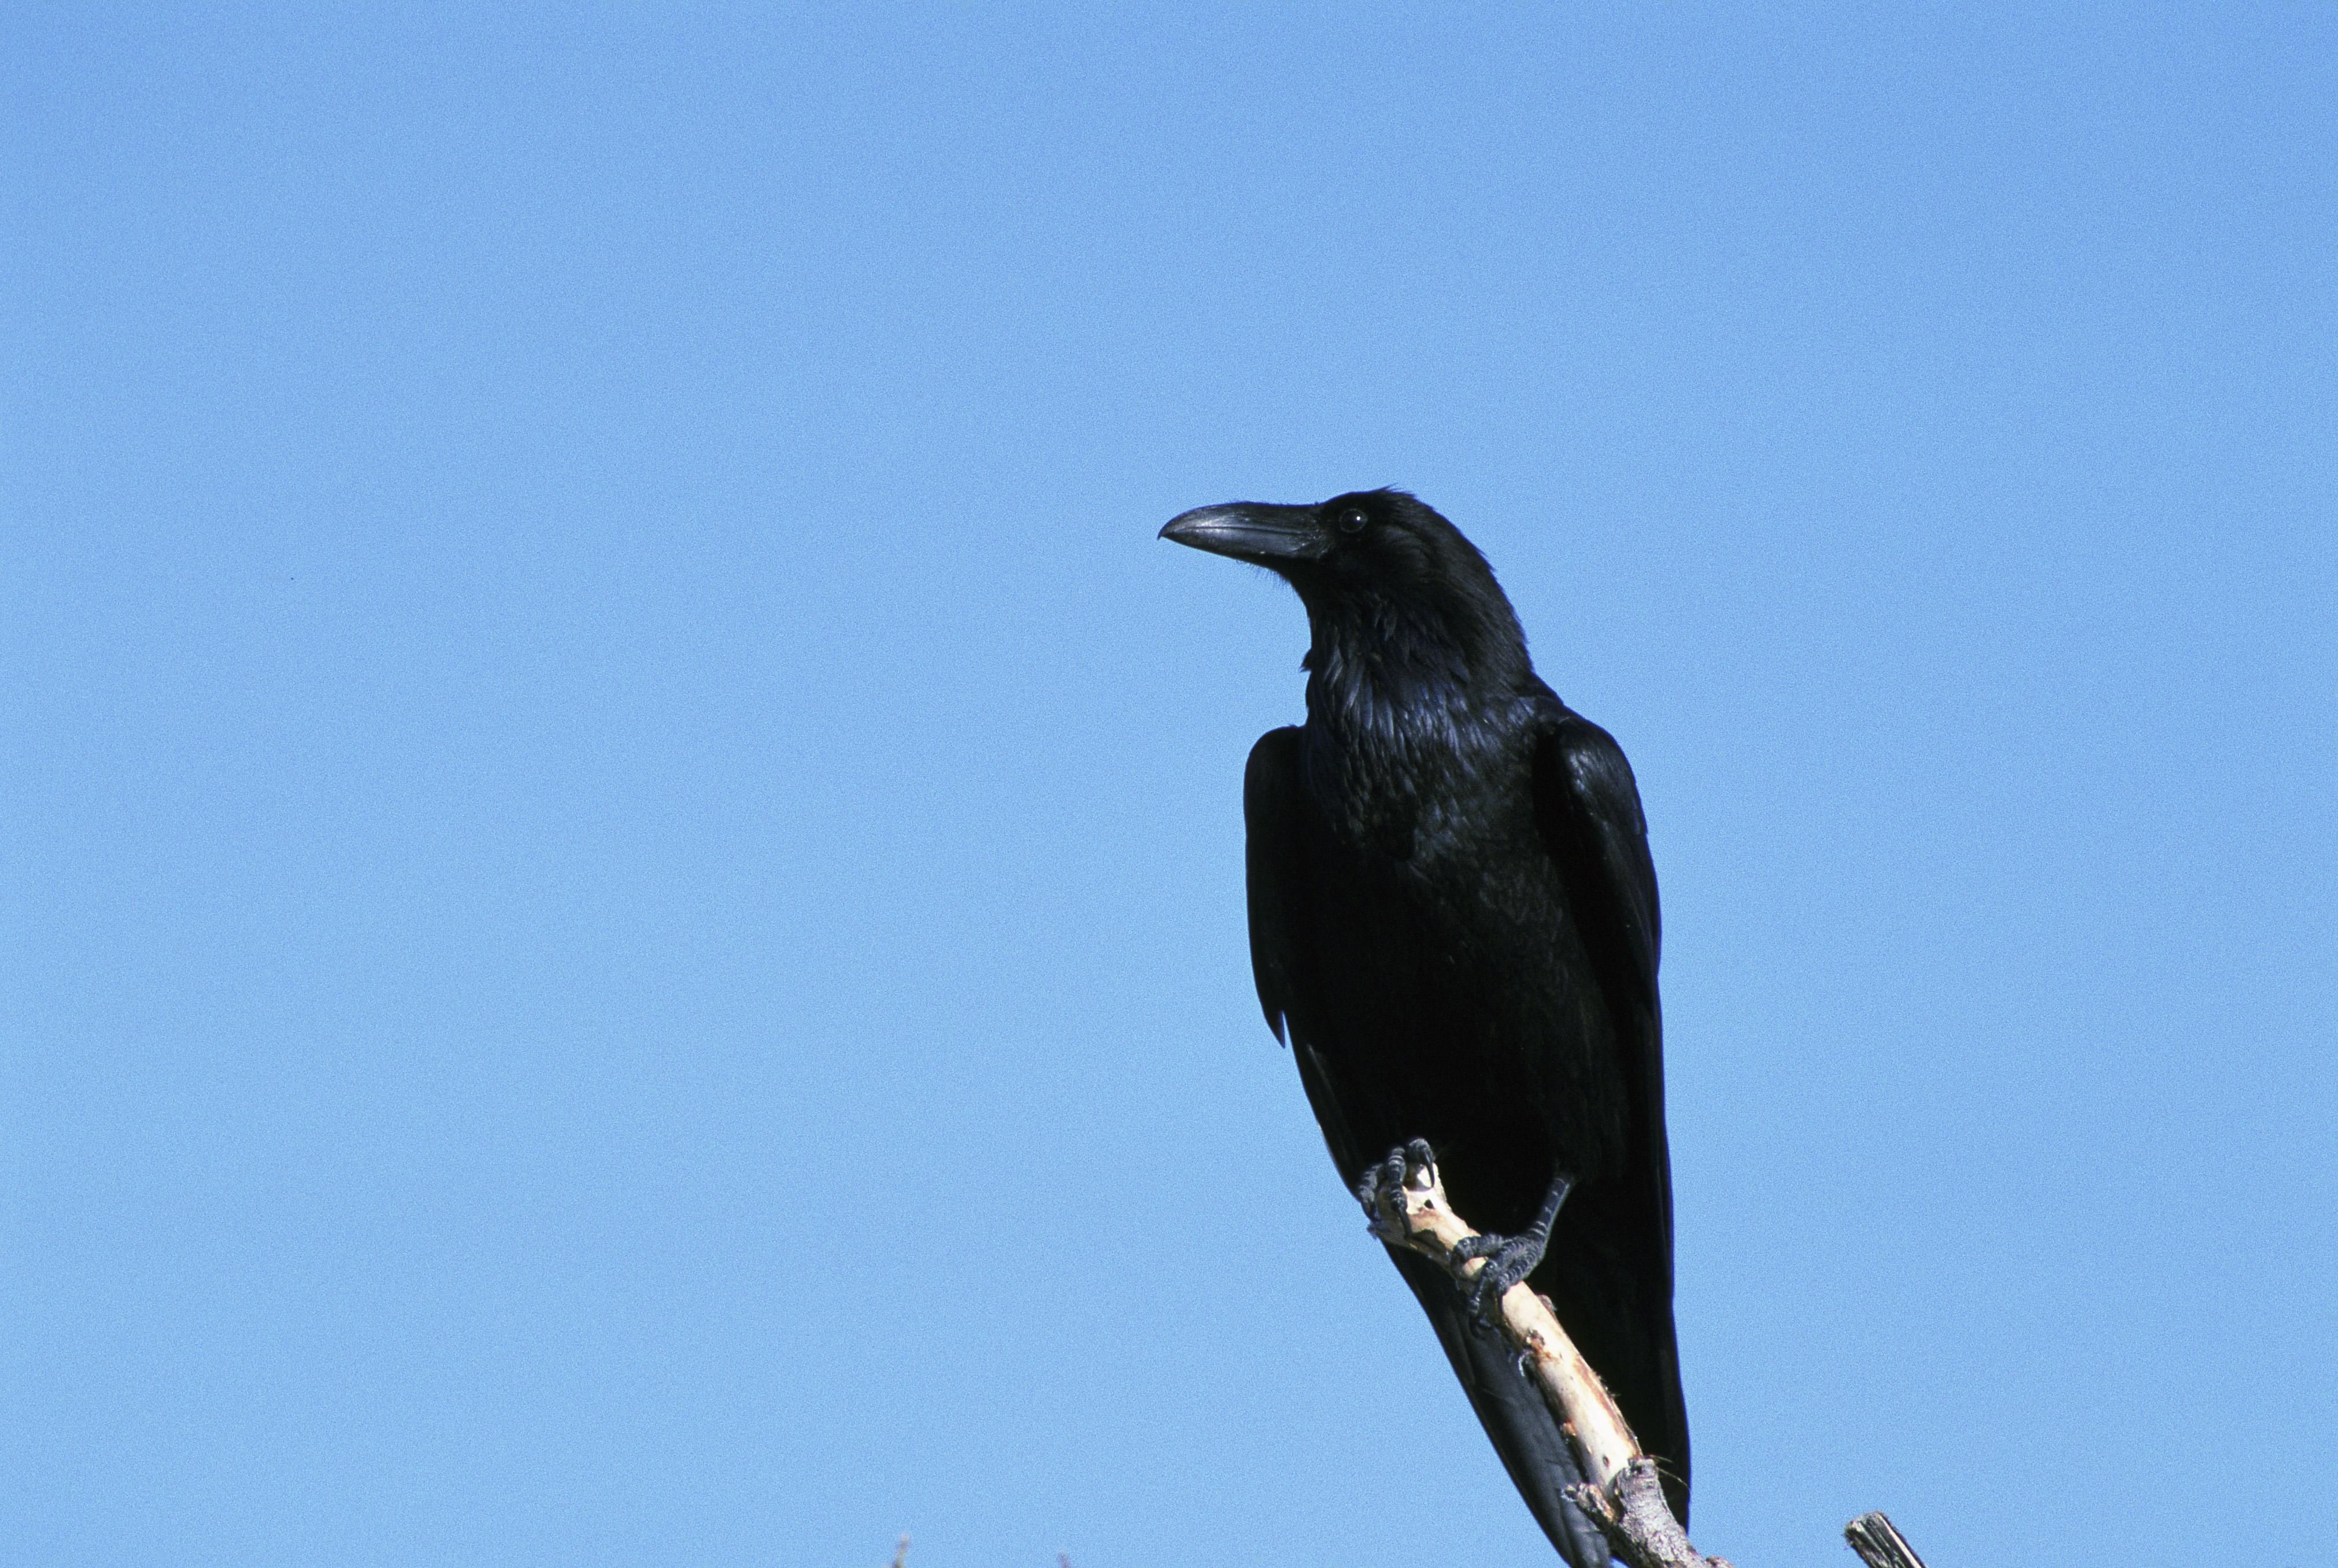 Black Animal Print Wallpaper Free Picture Raven Sitting Branch